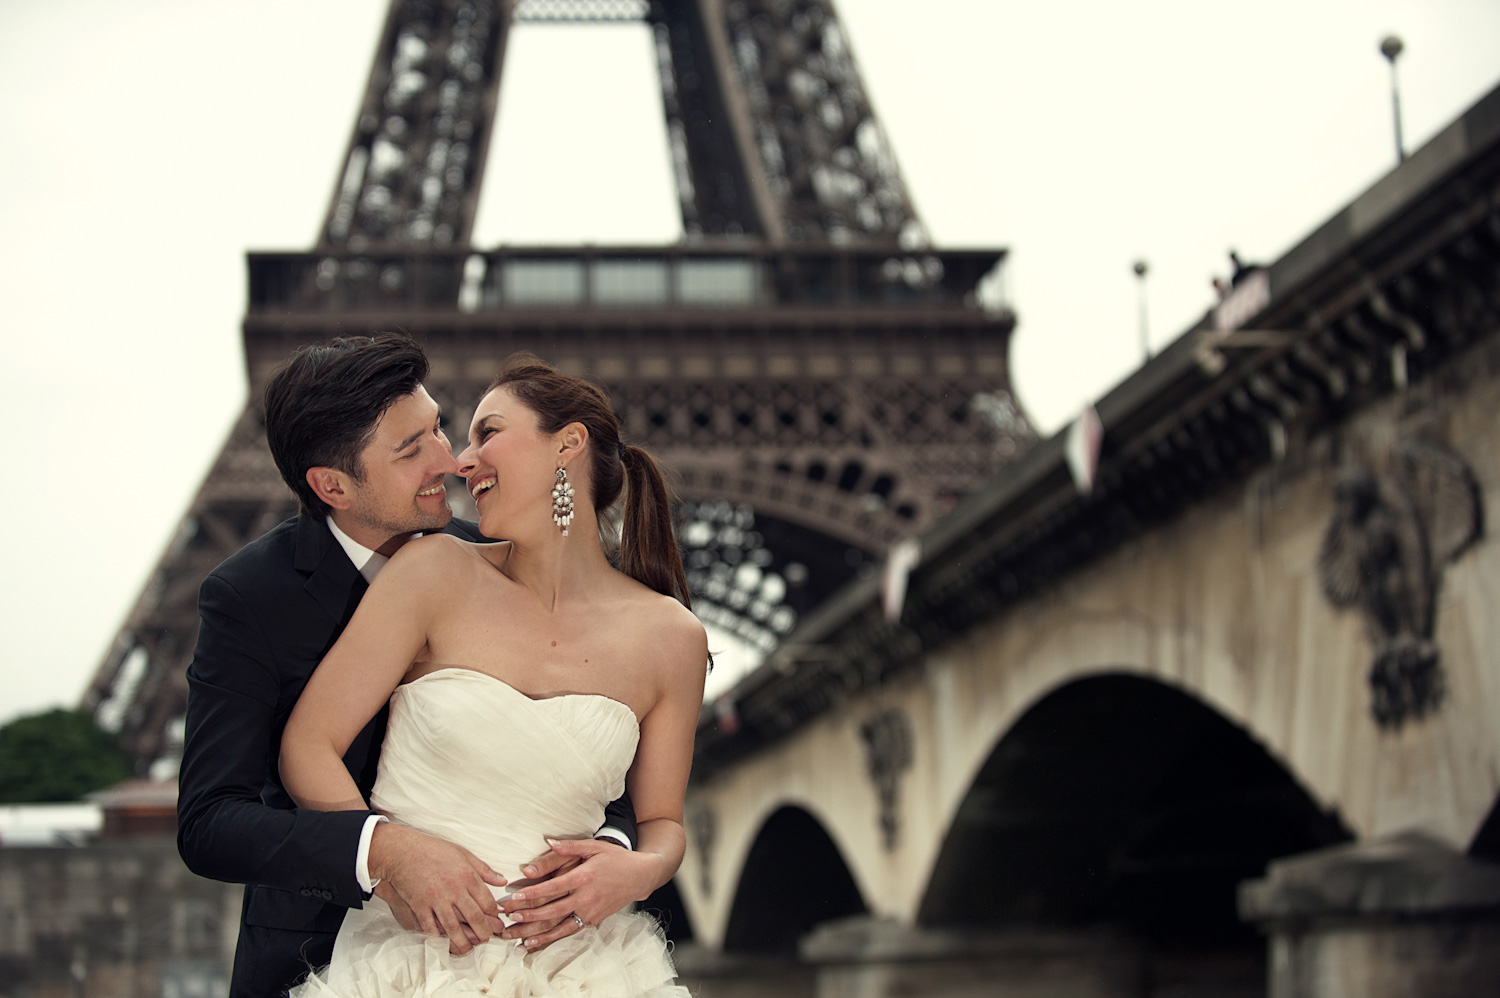 Lidija and Denis wedding photoshooting in Paris 22